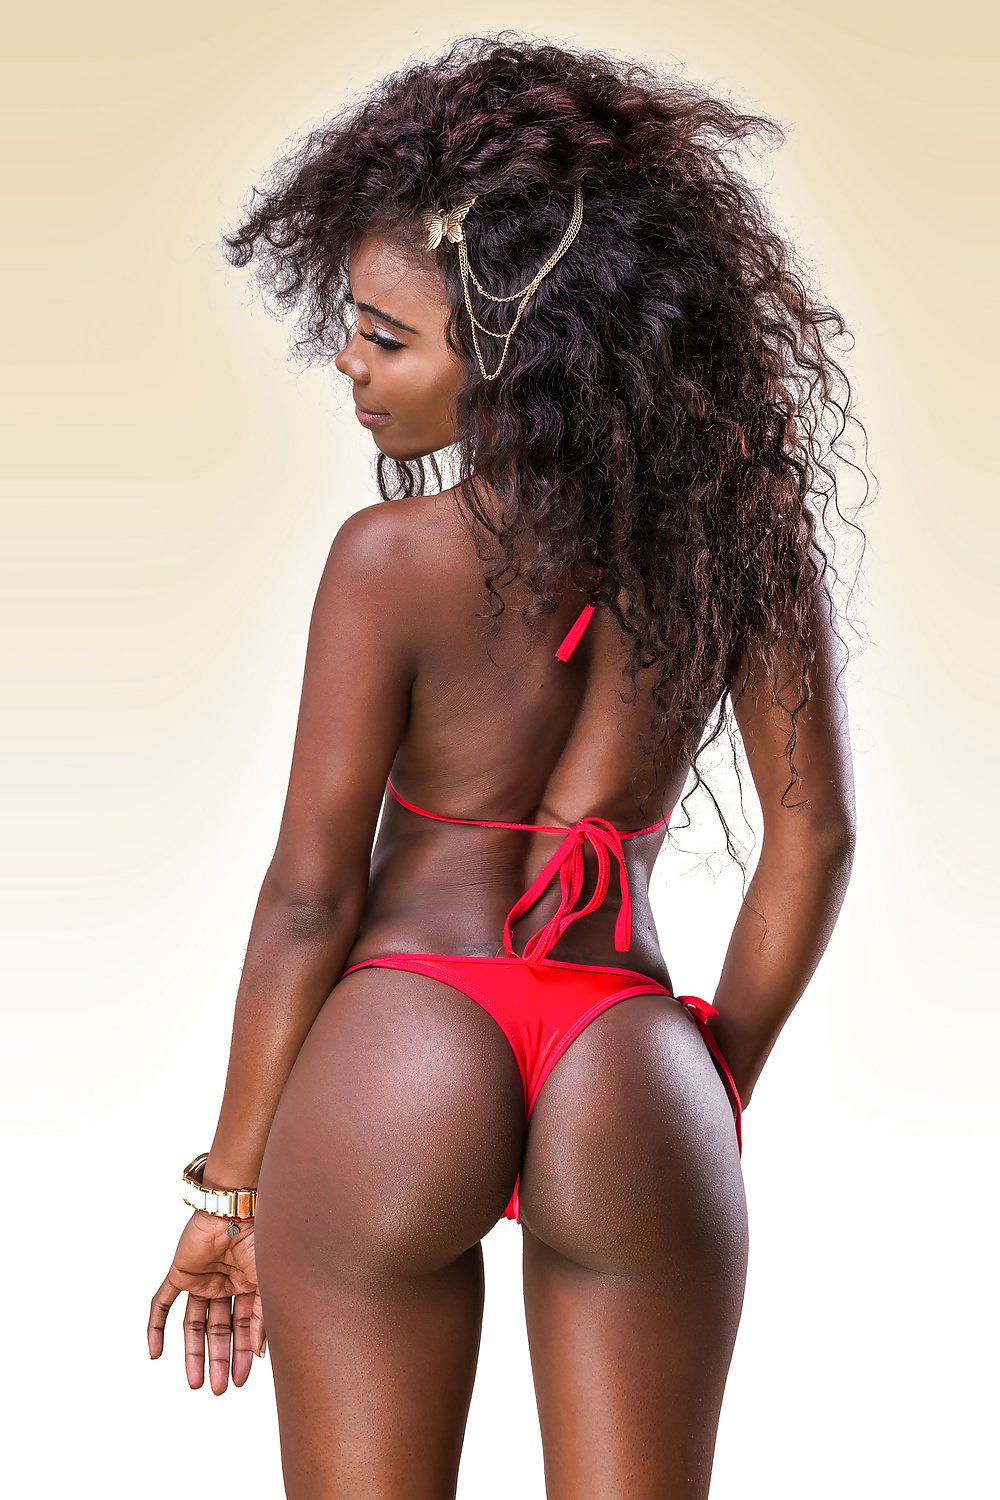 Dark skinned girls nude